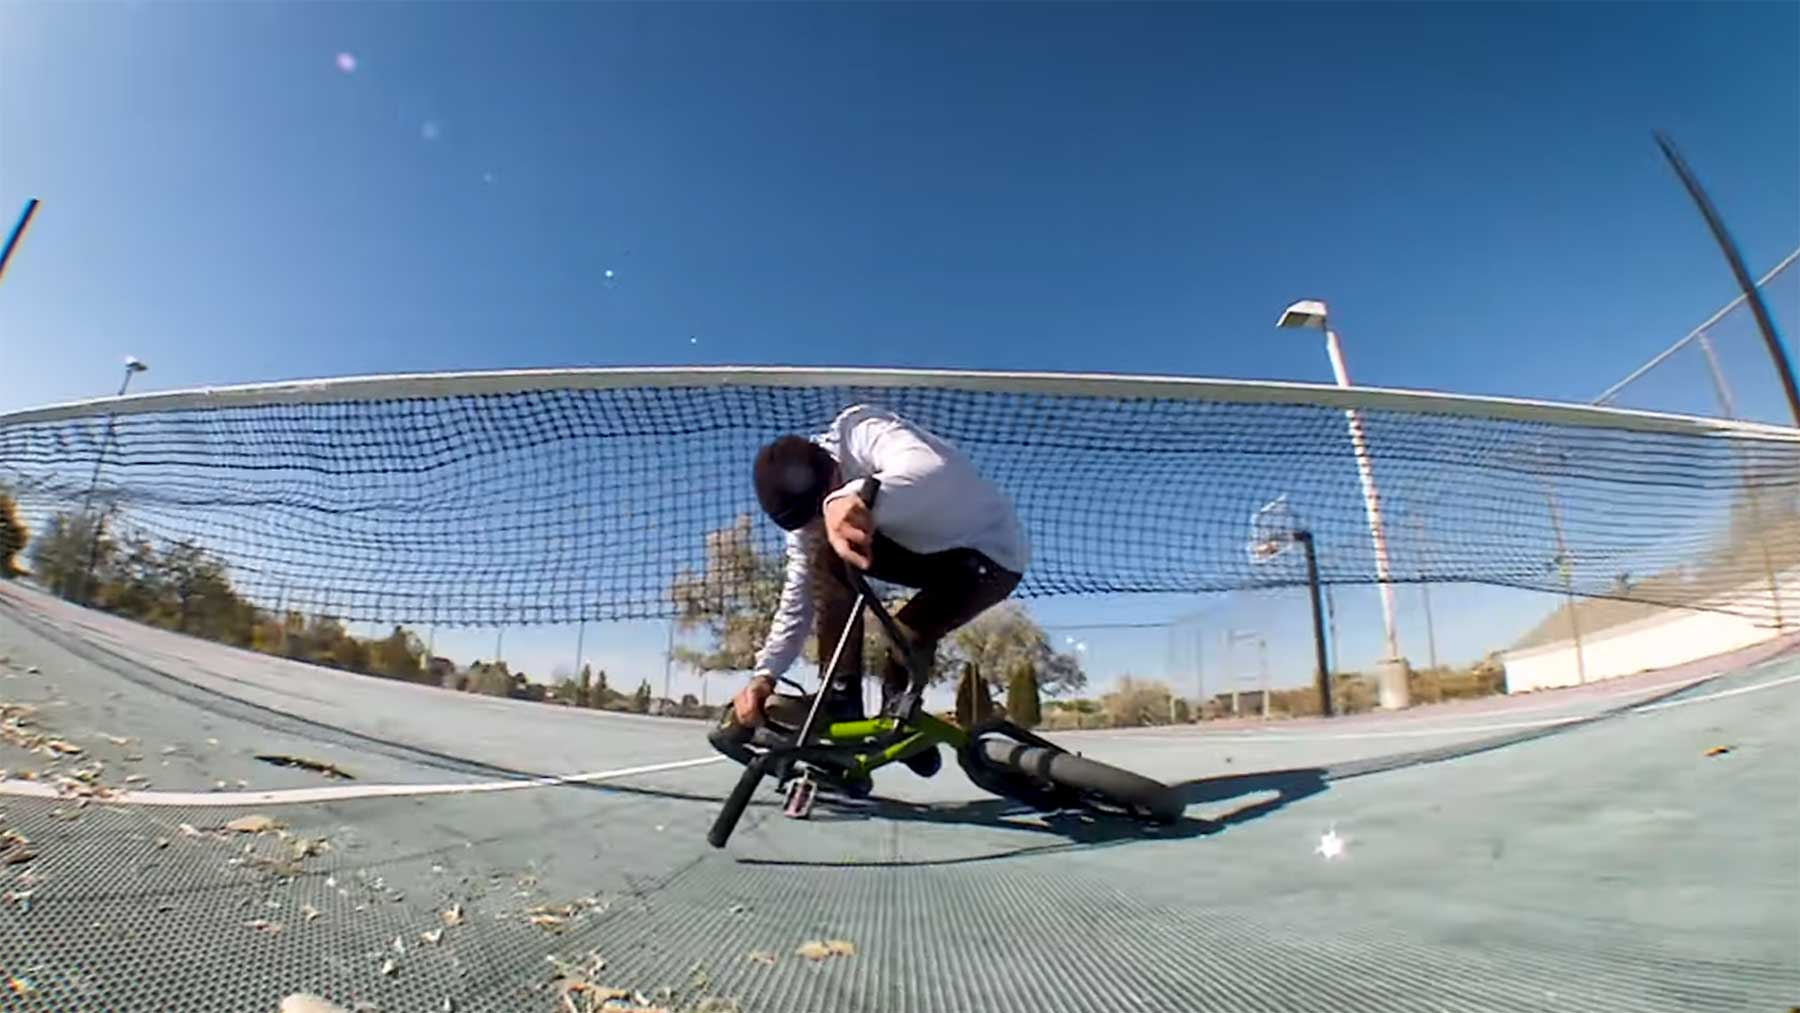 Neue ausgefallene BMX-Tricks von Tate Roskelley TATE-ROSKELLEY-HEADLIGHTS-bmx-part